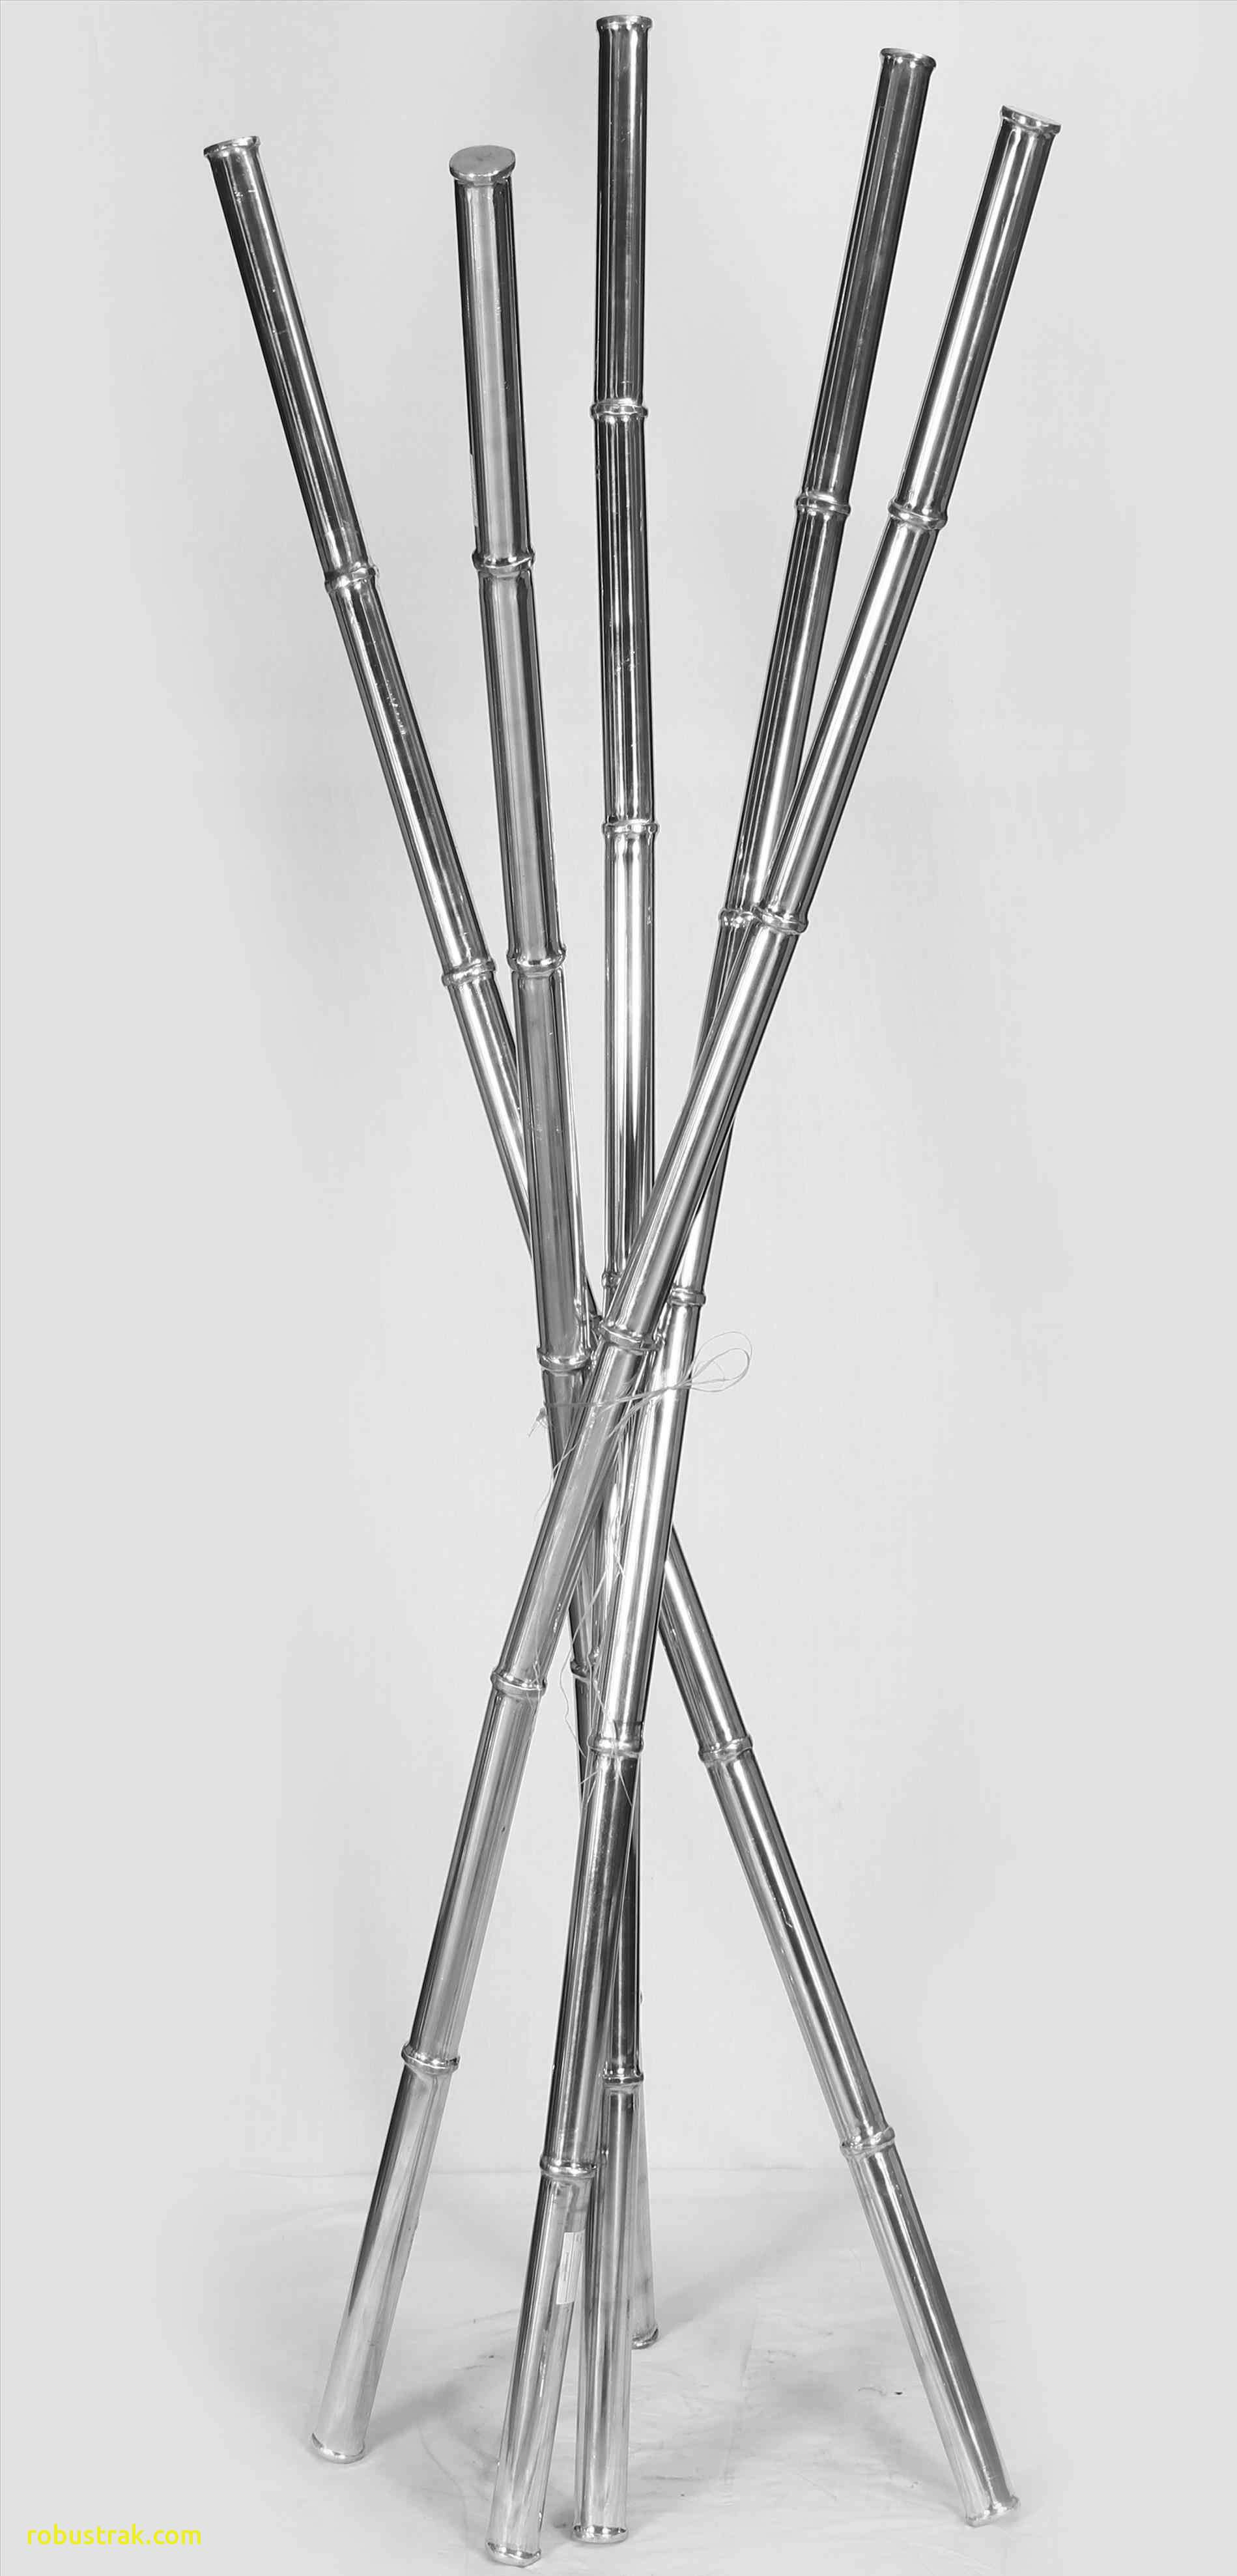 Bamboo Floor Vase Of Inspirational Decor Sticks In A Vase Home Design Ideas In Accessory Tea Bamboo Sticks In Vase Extraordary Tall S then Pterest H Vases 8d